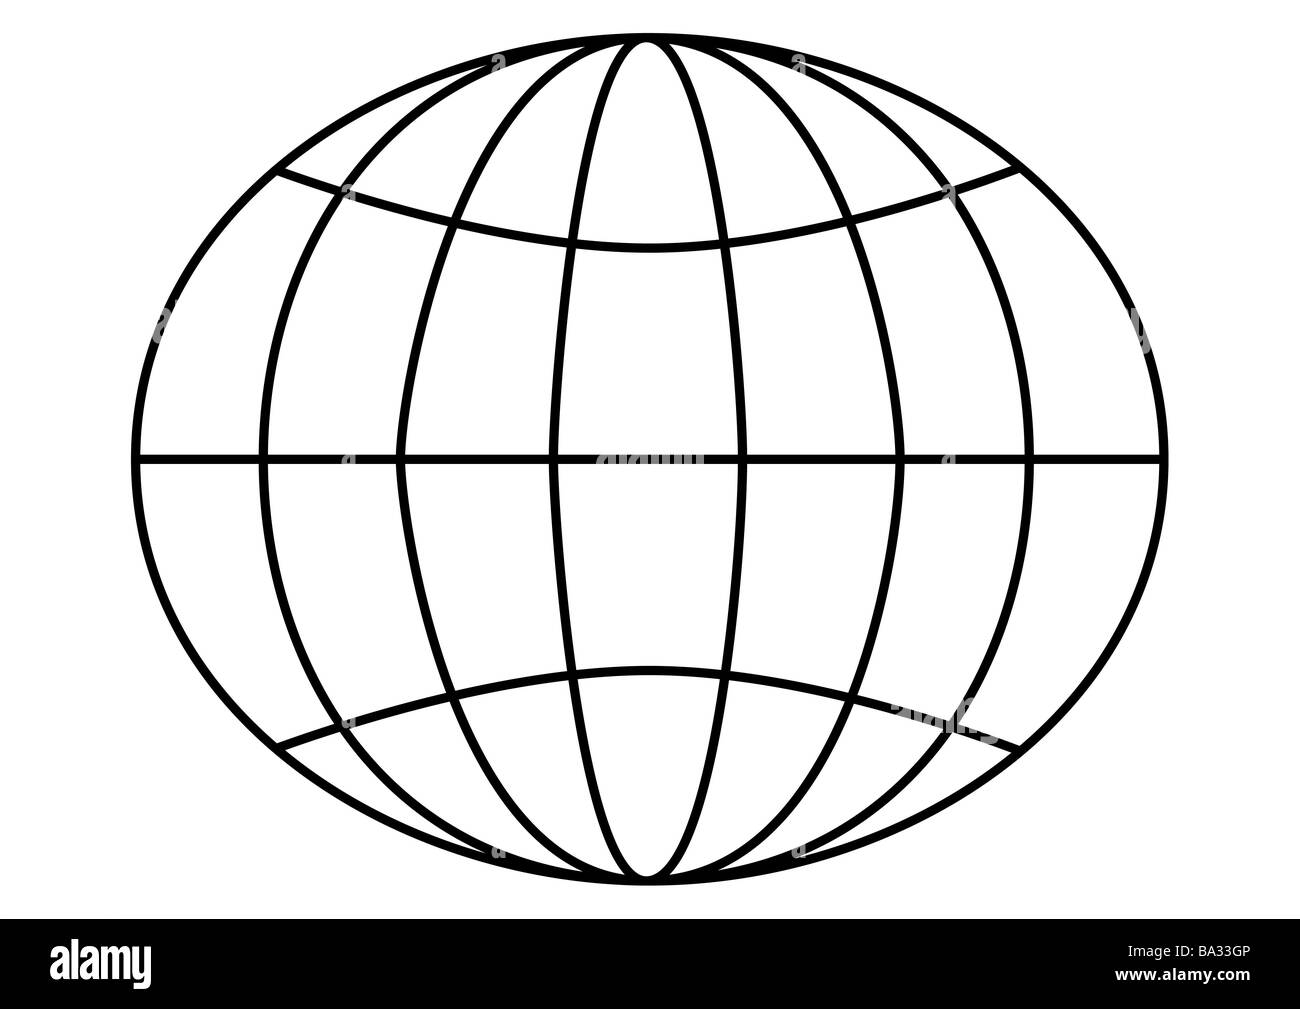 Latitude lines black and white stock photos images alamy earth representation degrees of latitude longitudes graphics lines planet world globe globe globe division meridians ccuart Choice Image